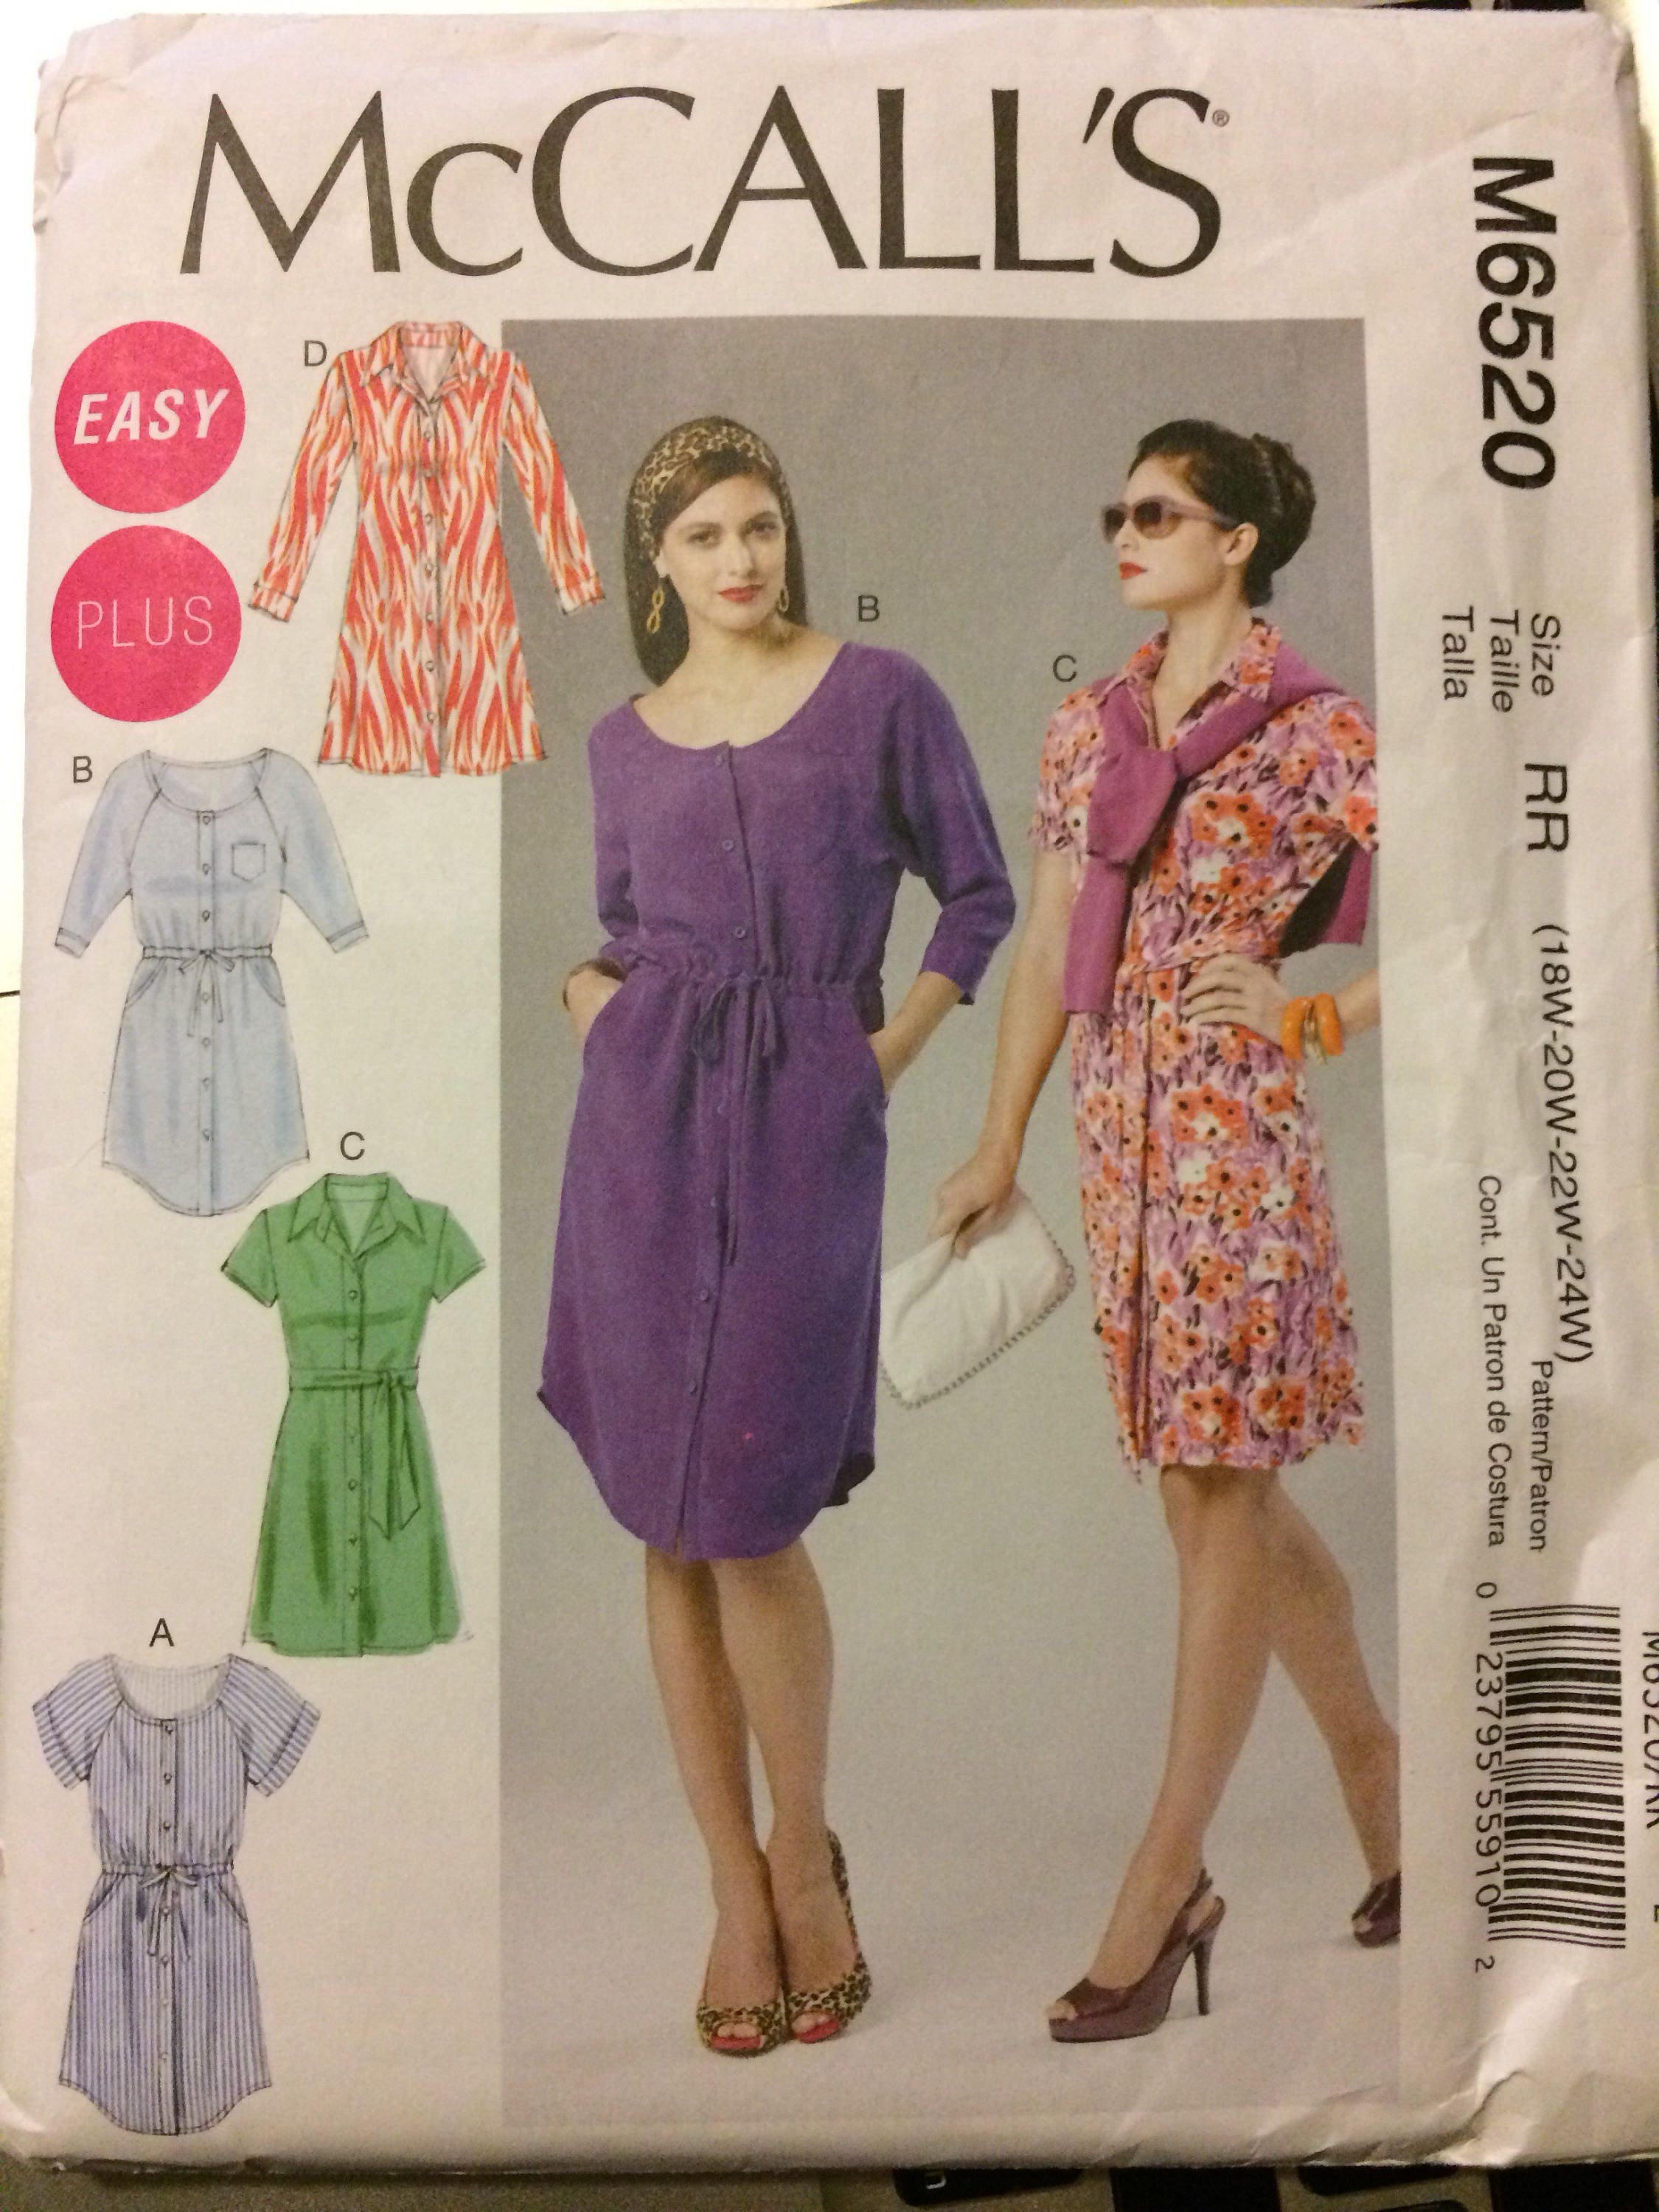 7955a5ce5fb Uncut McCall s 6520 Sewing Pattern Women s Dress Bust 40-46 inches Complete  Plus Size from GoofingOffSewing on Etsy Studio